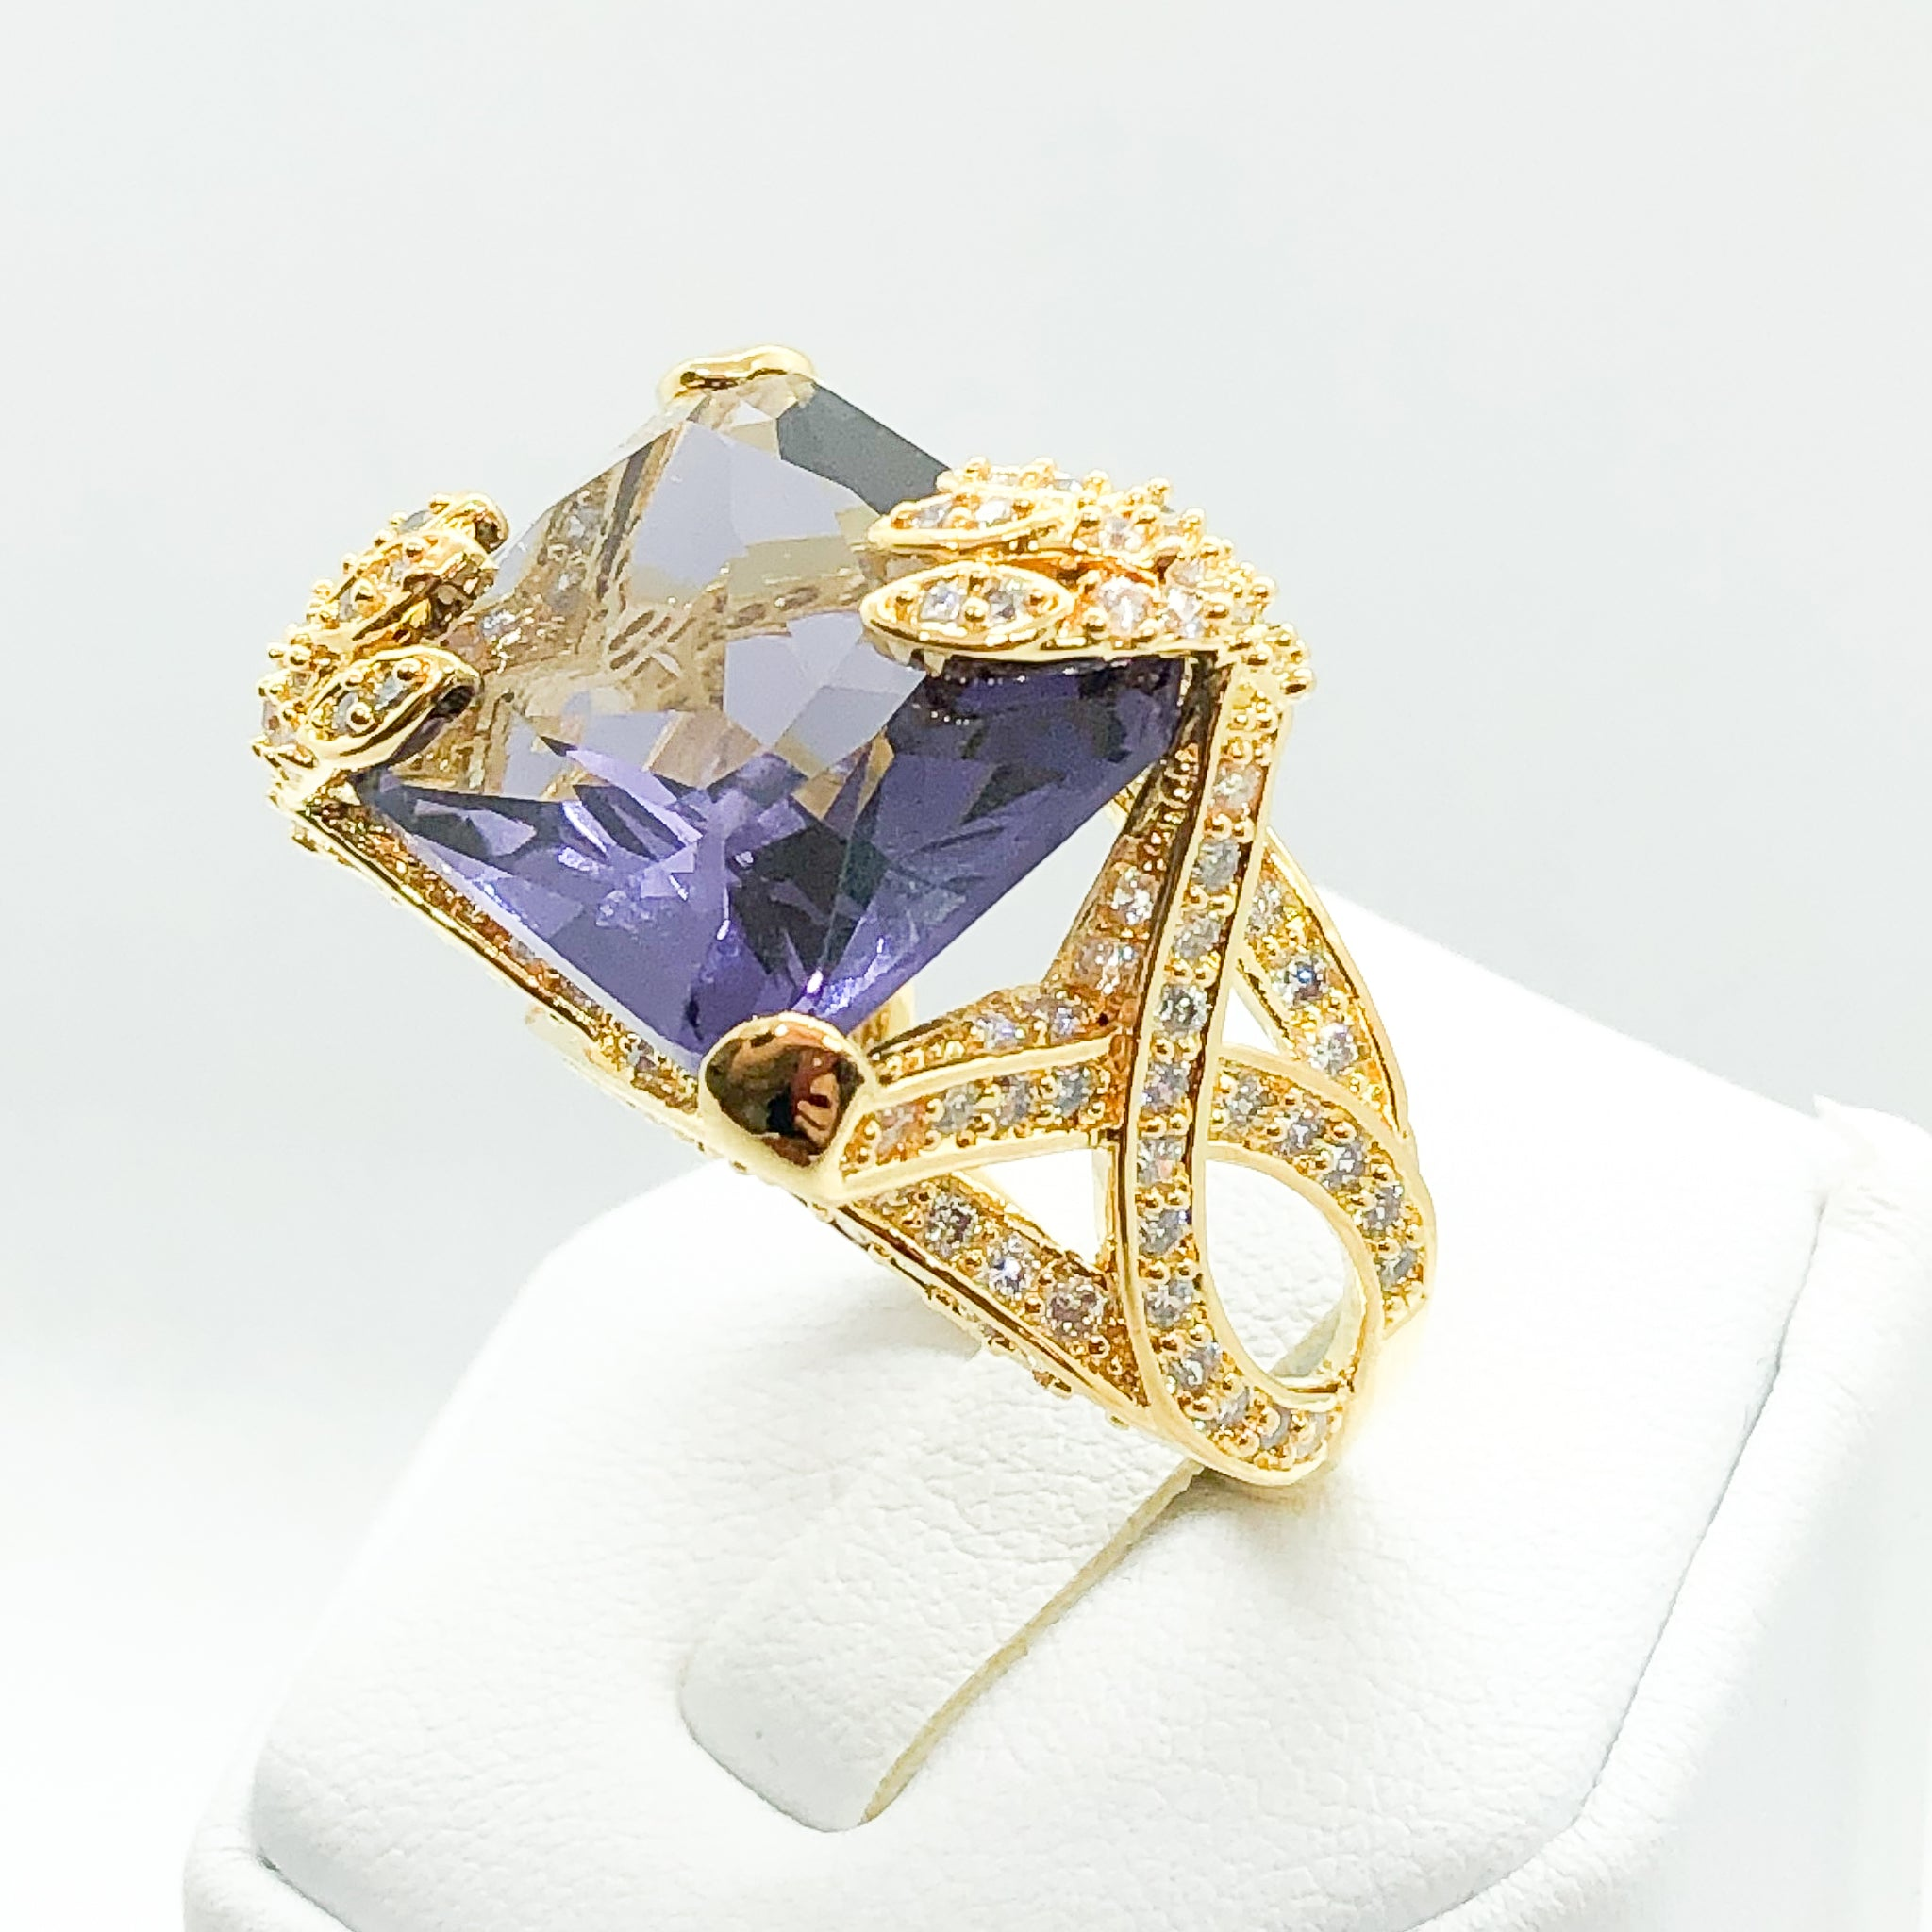 ID:R3844-4 Women Fashion Jewelry 18K Yellow Gold GF Big Center Amethyst with Clear Diamonique Accent Alluring Cocktail Ring Perfect Anniversary Gift